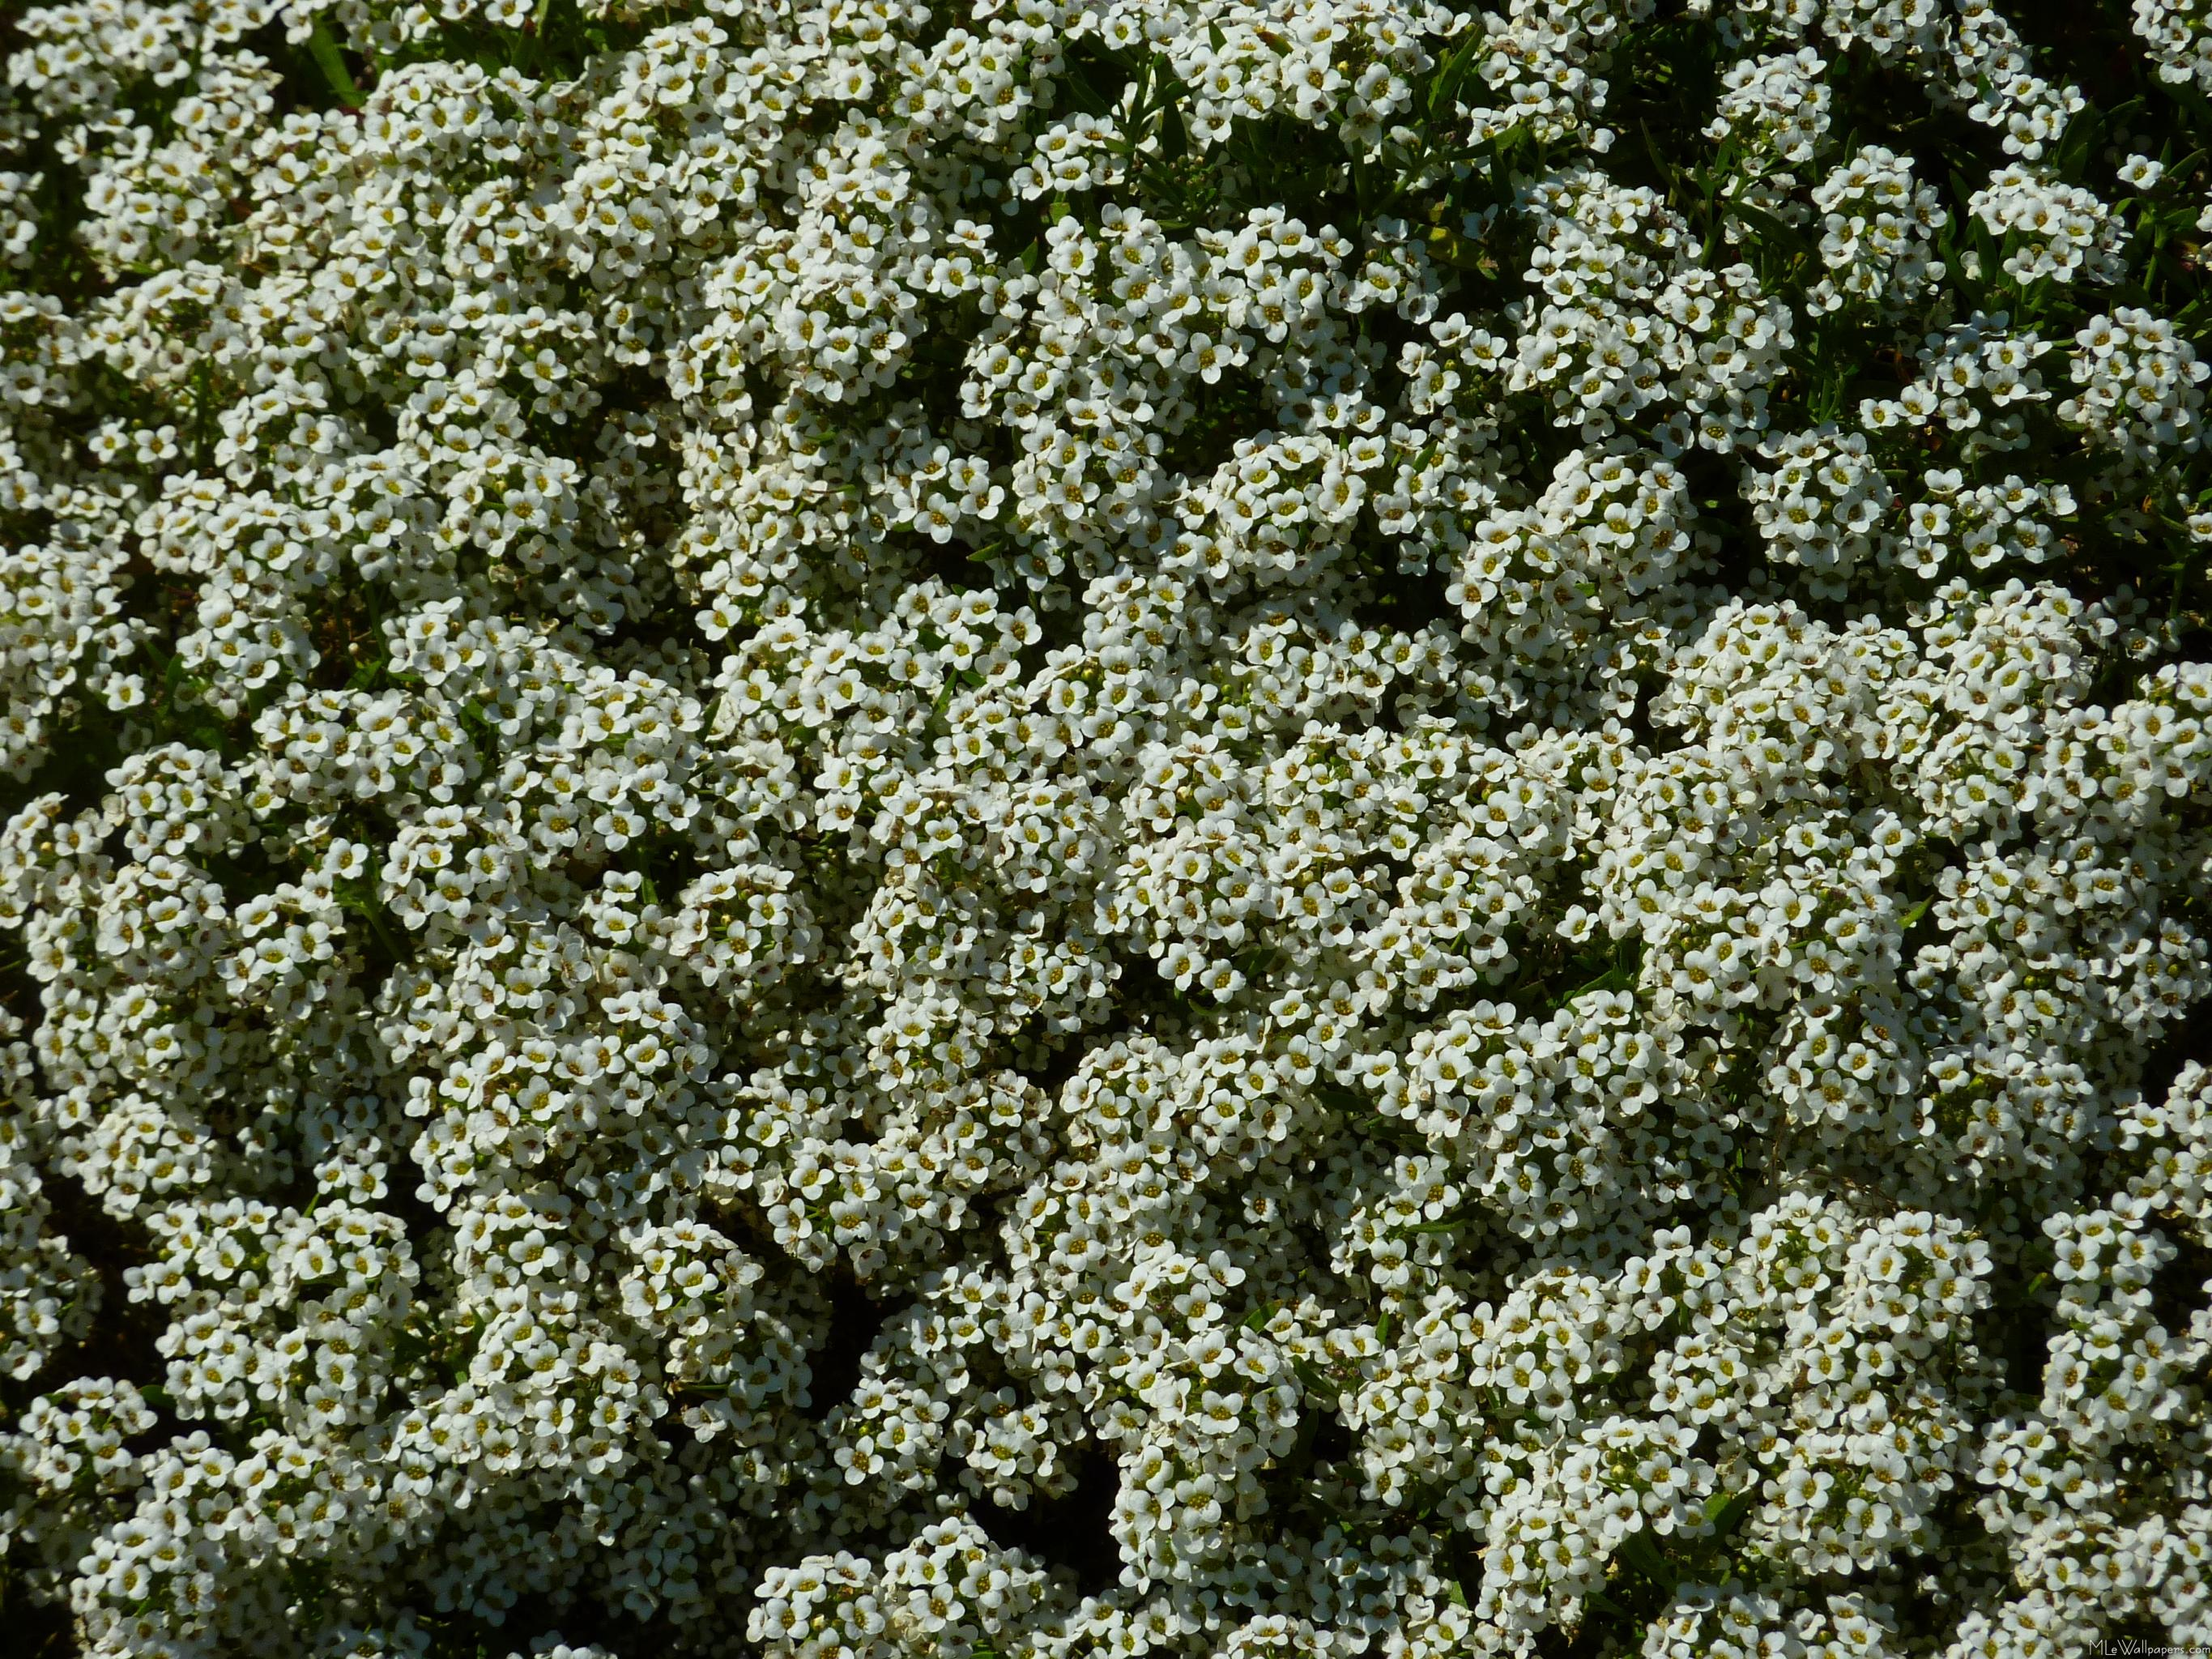 Ground Cover With Tiny White Flowers O2 Pilates